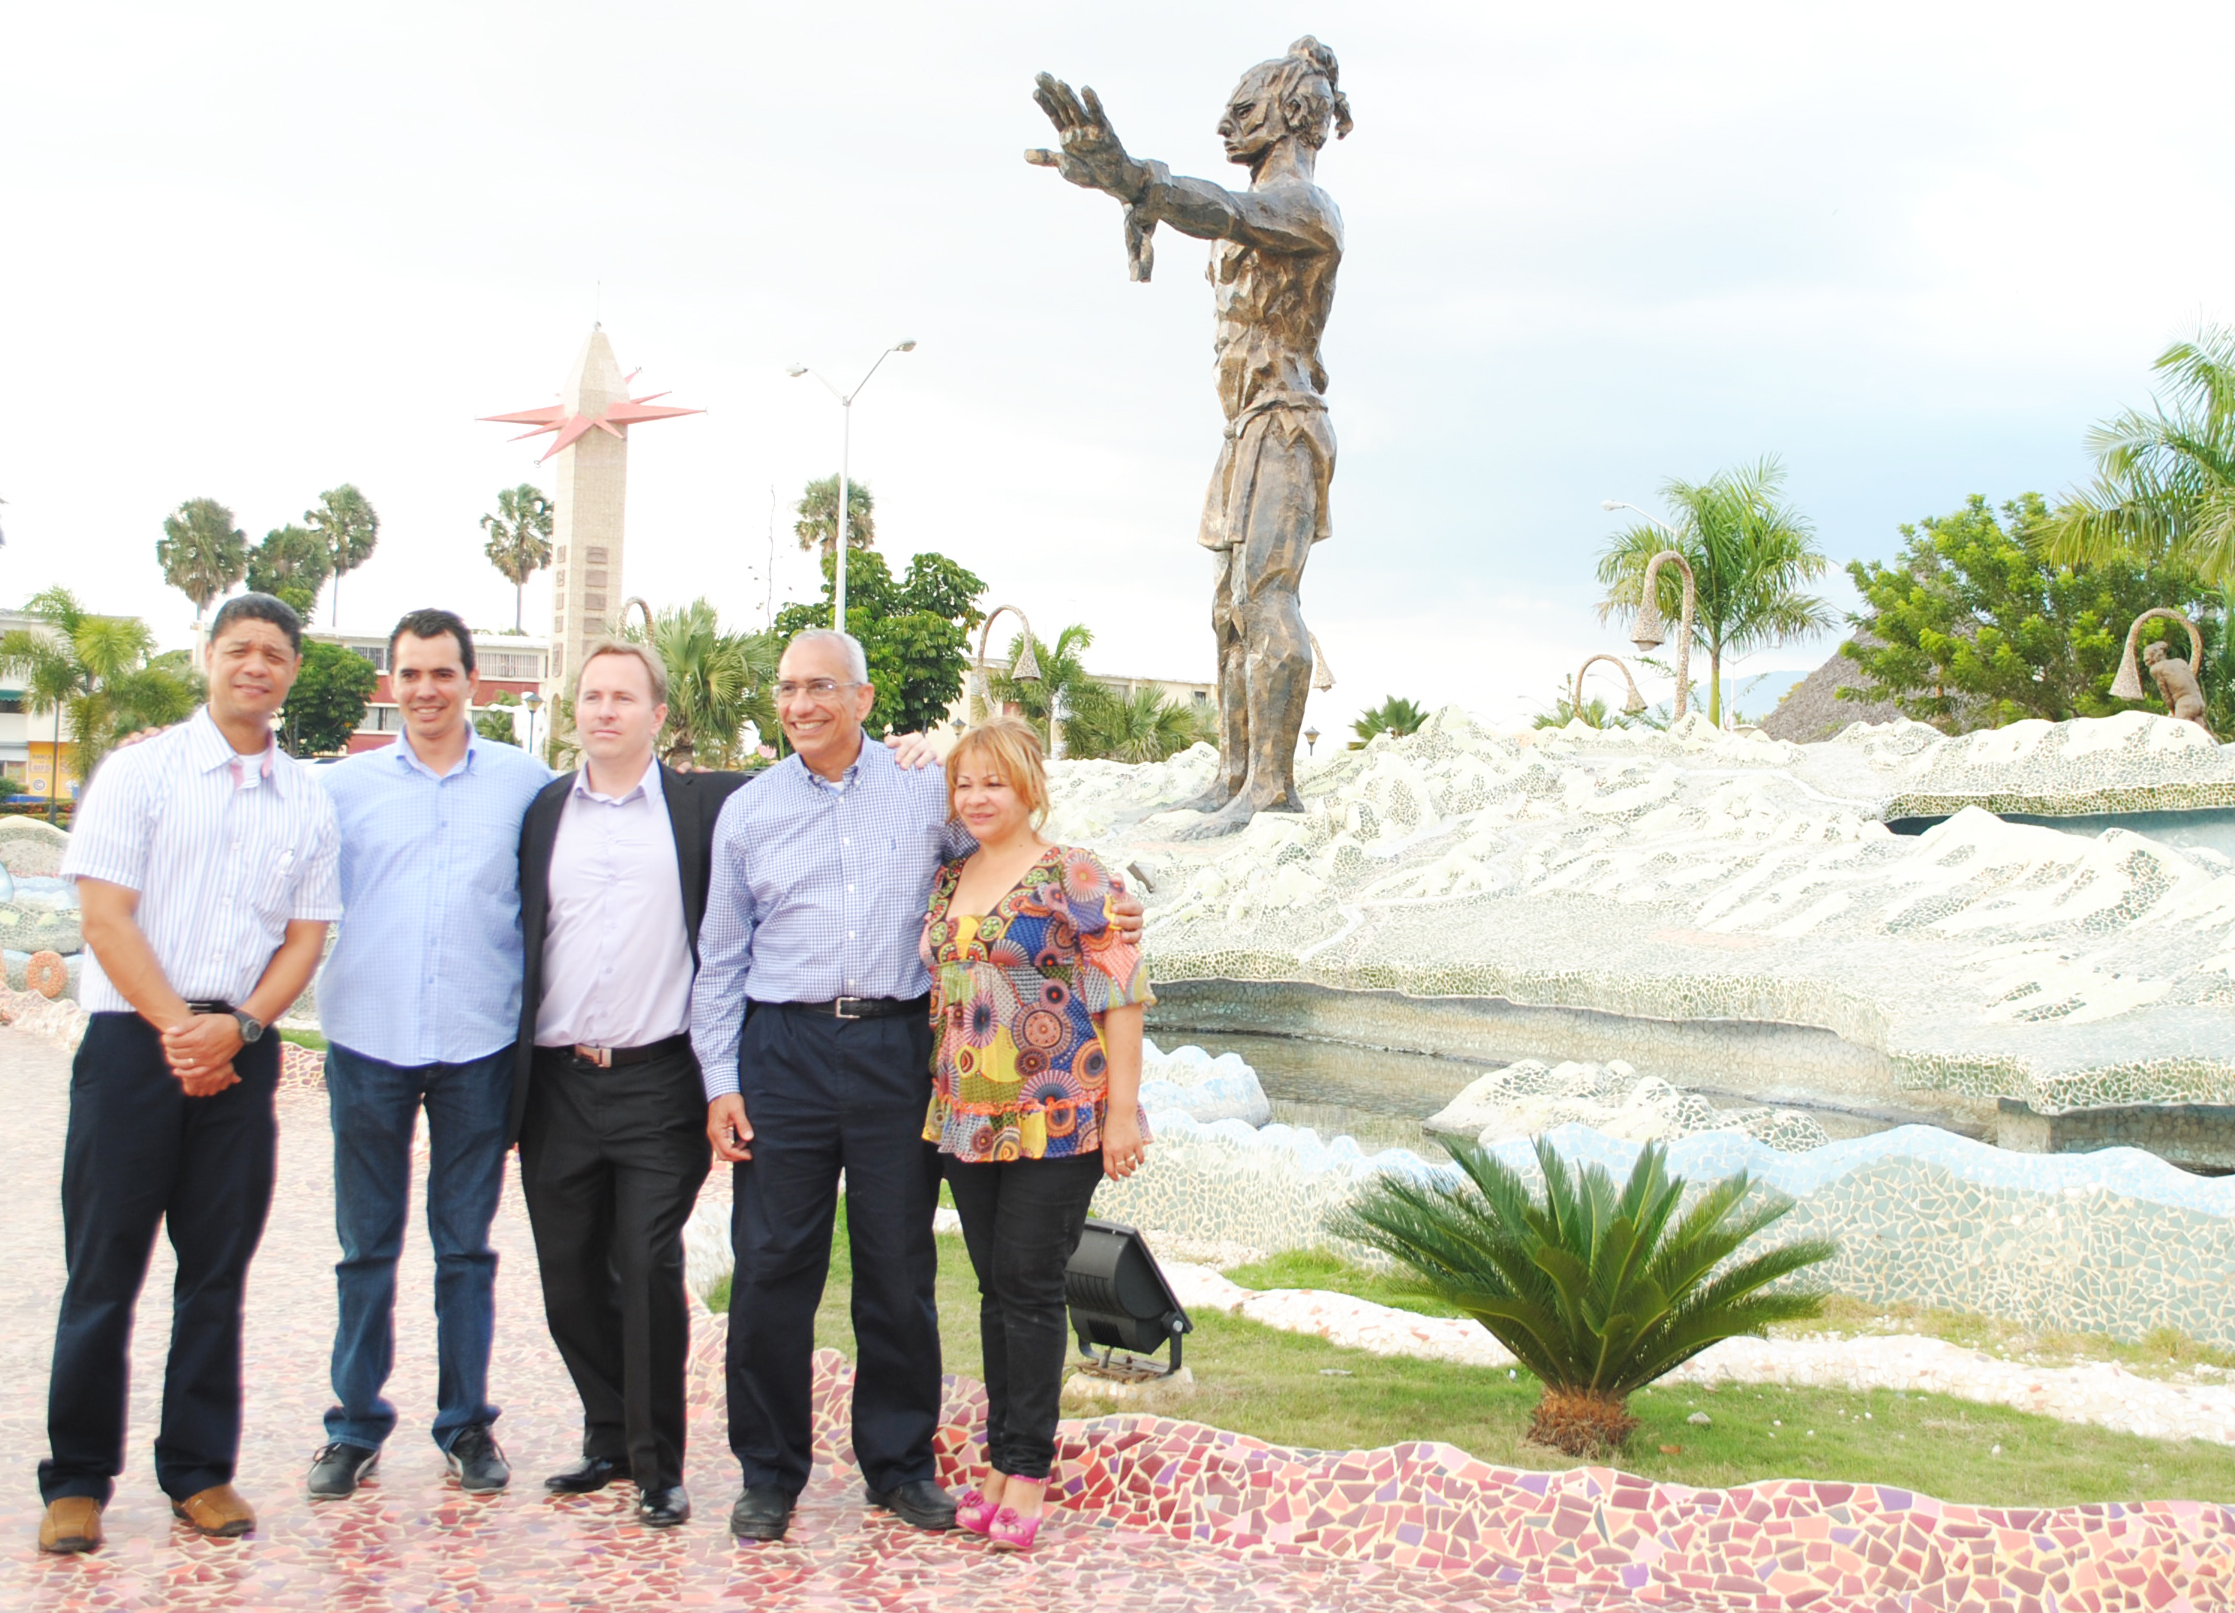 Felix Mercedes (GQC Country Manager), Eduardo Ramirez, Counsellor Aladin Legault, Julio Espaillat (GQC President & CEO) & Mayor Hanoi Sanchez (Mayor of San Juan De La Maguana, DR) at the Plaza Caonabo at the entrance of San Juan De La Maguana